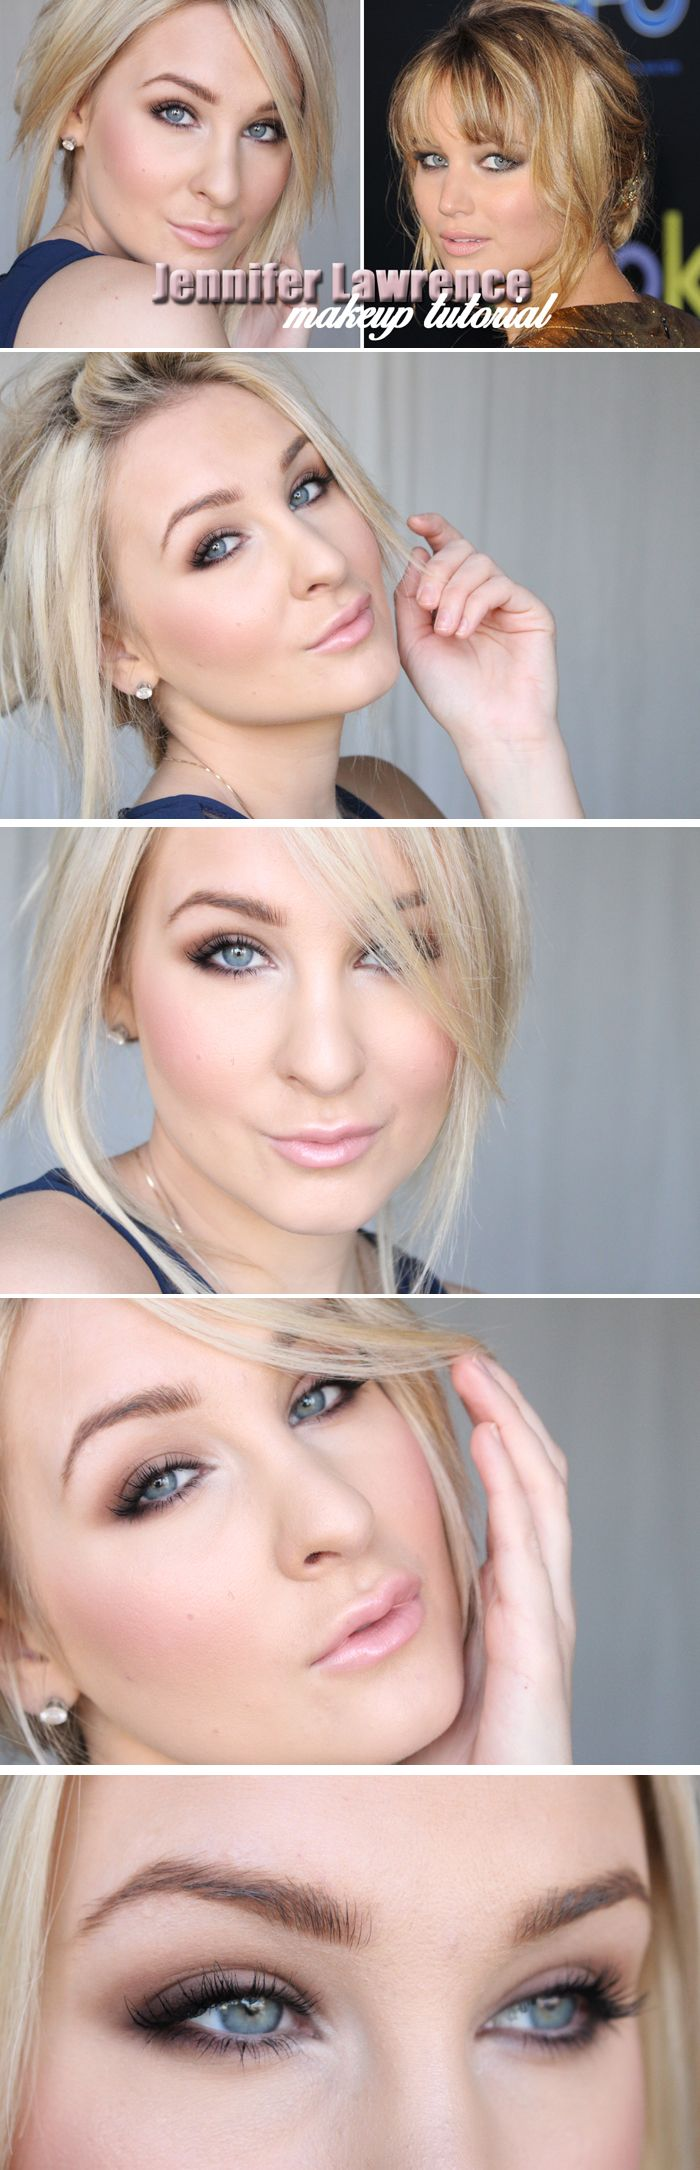 Dagens makeup – JENNIFER LAWRENCE TUTORIAL